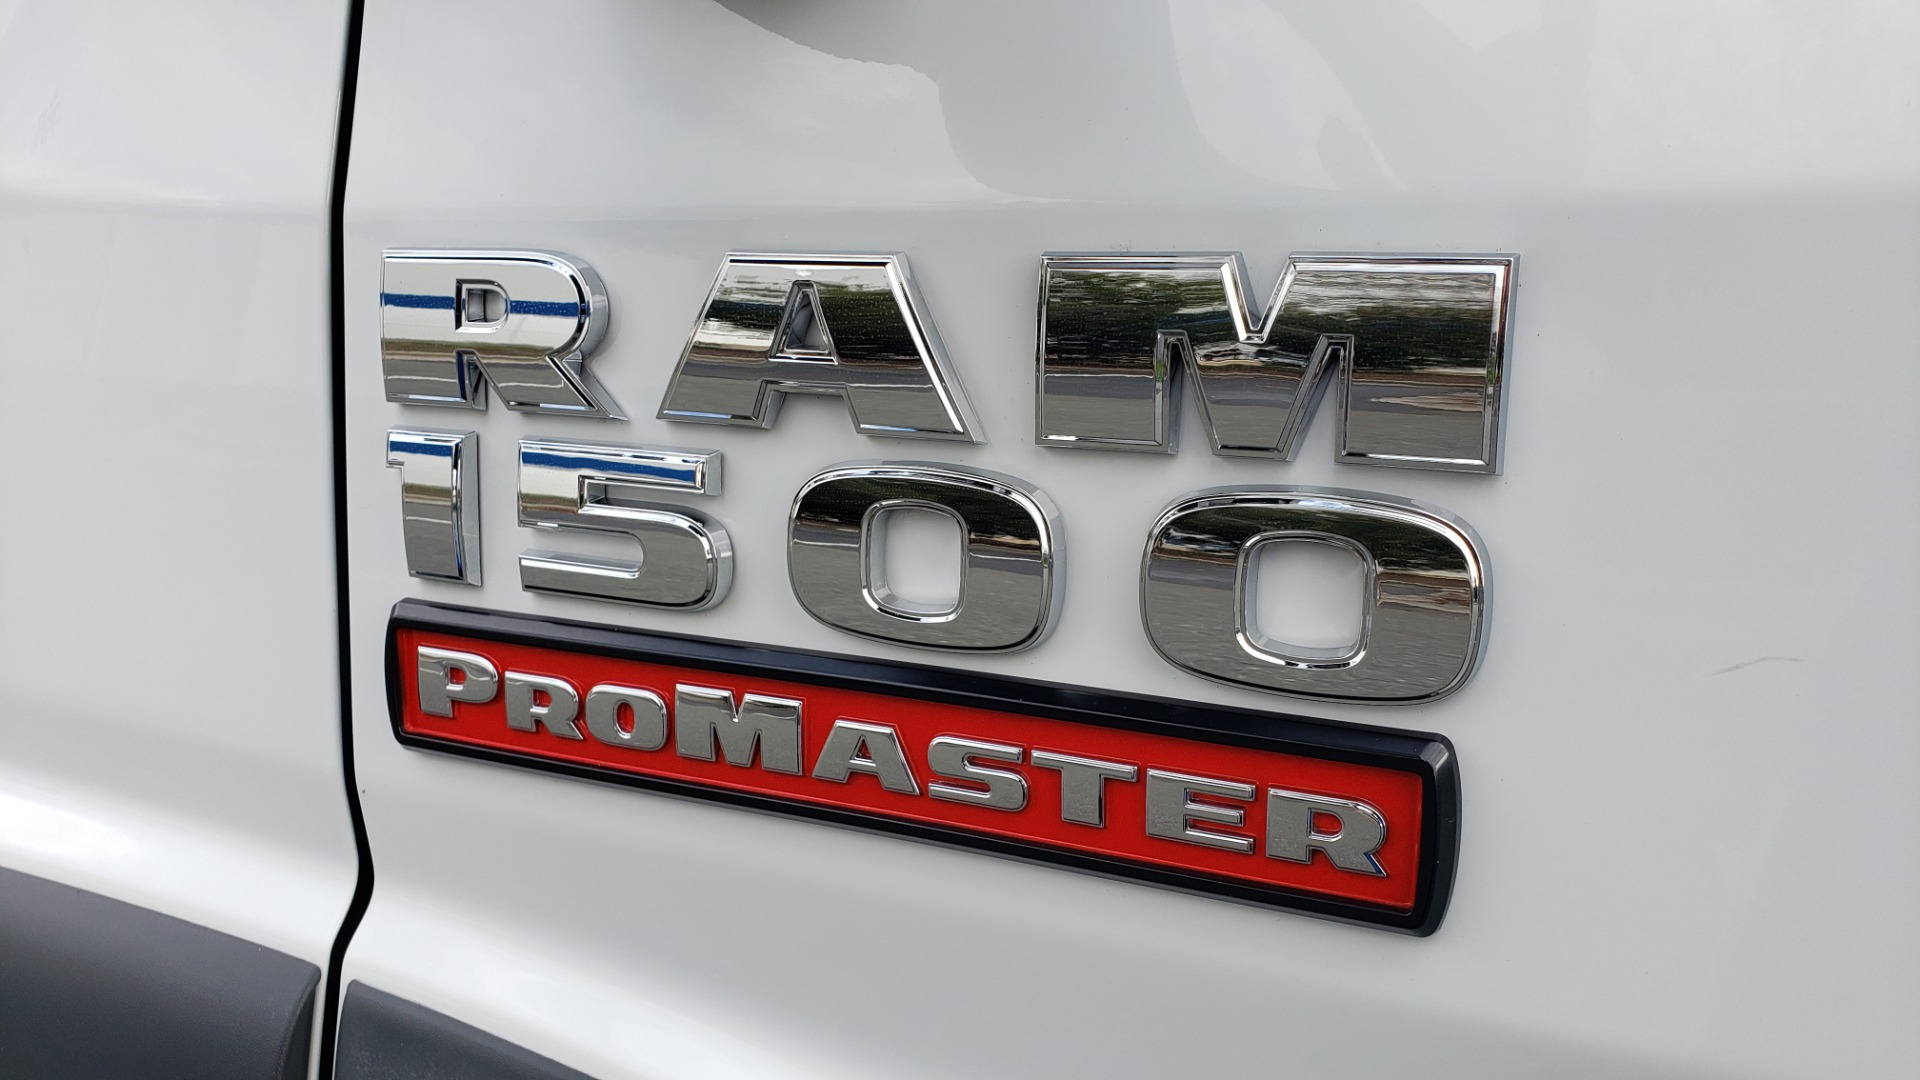 Used 2015 Ram PROMASTER CARGO VAN 136-INCH WB / LOW ROOF / LADDER RACK / INSIDE RACKS for sale Sold at Formula Imports in Charlotte NC 28227 10